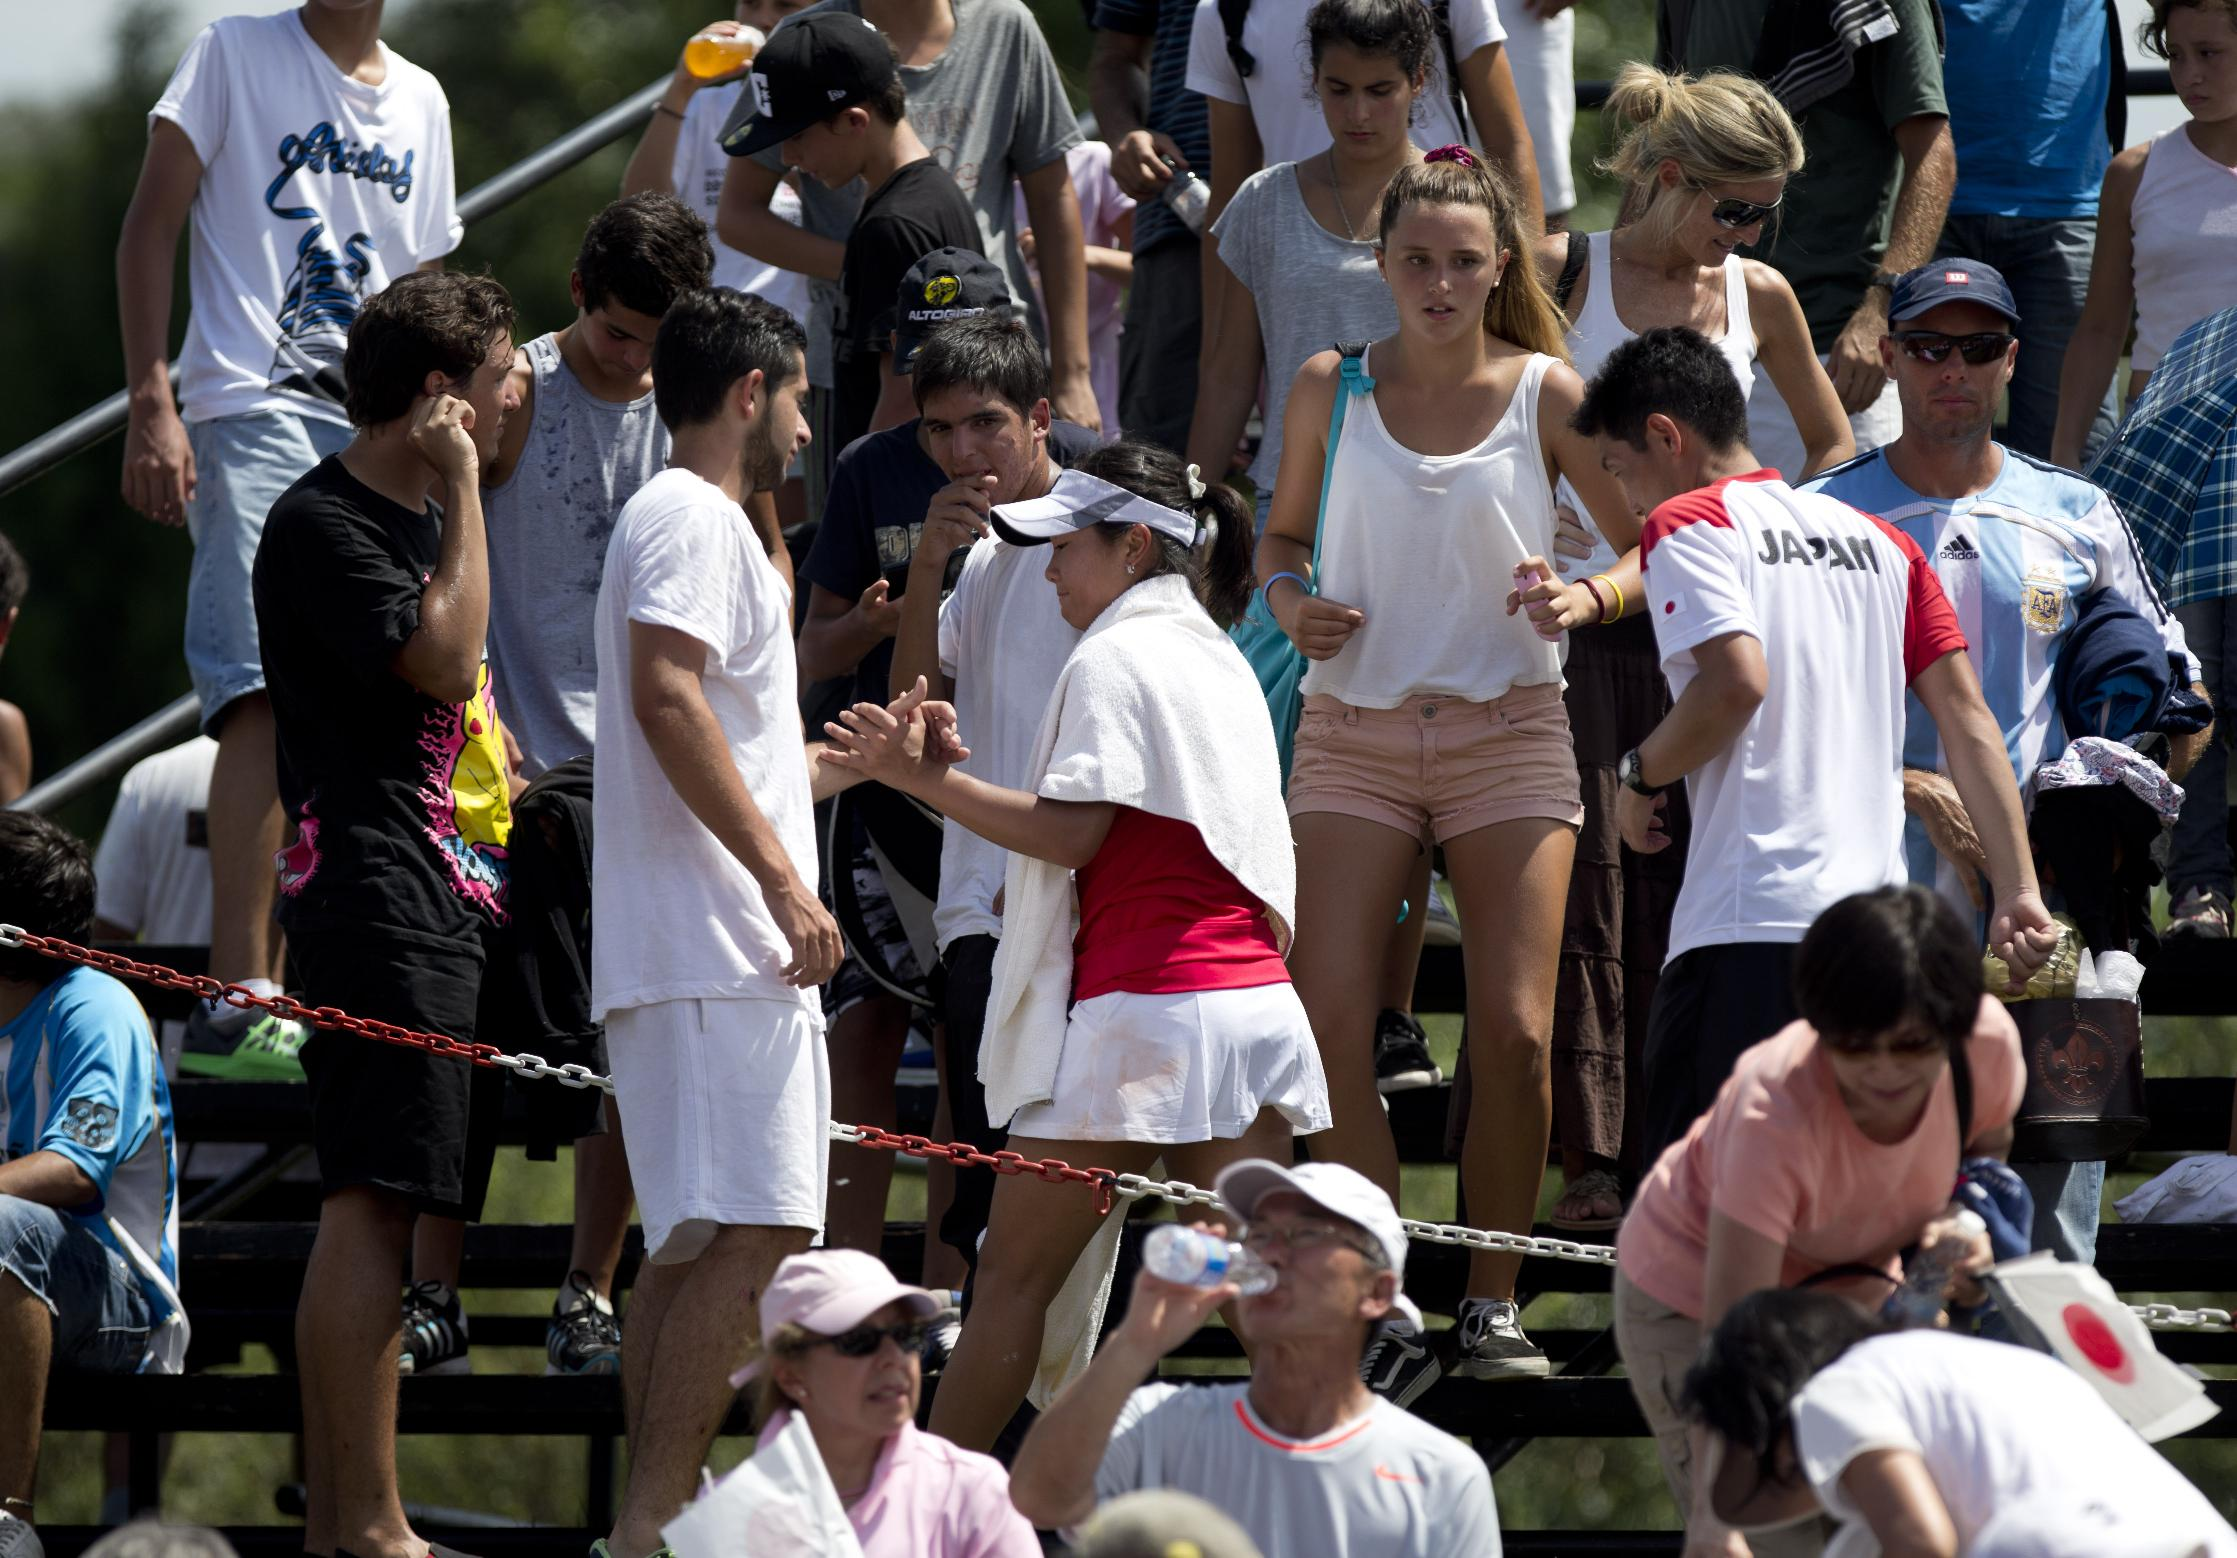 Japan's Kurumi Nara, center, shakes hands with a fan as she leaves the court after her Fed Cup World Group II tennis match in Pilar, Argentina, Saturday, Feb. 8, 2014.  Argentina's Maria Irigoyen won 6-7 (7), 6-4, 6-4